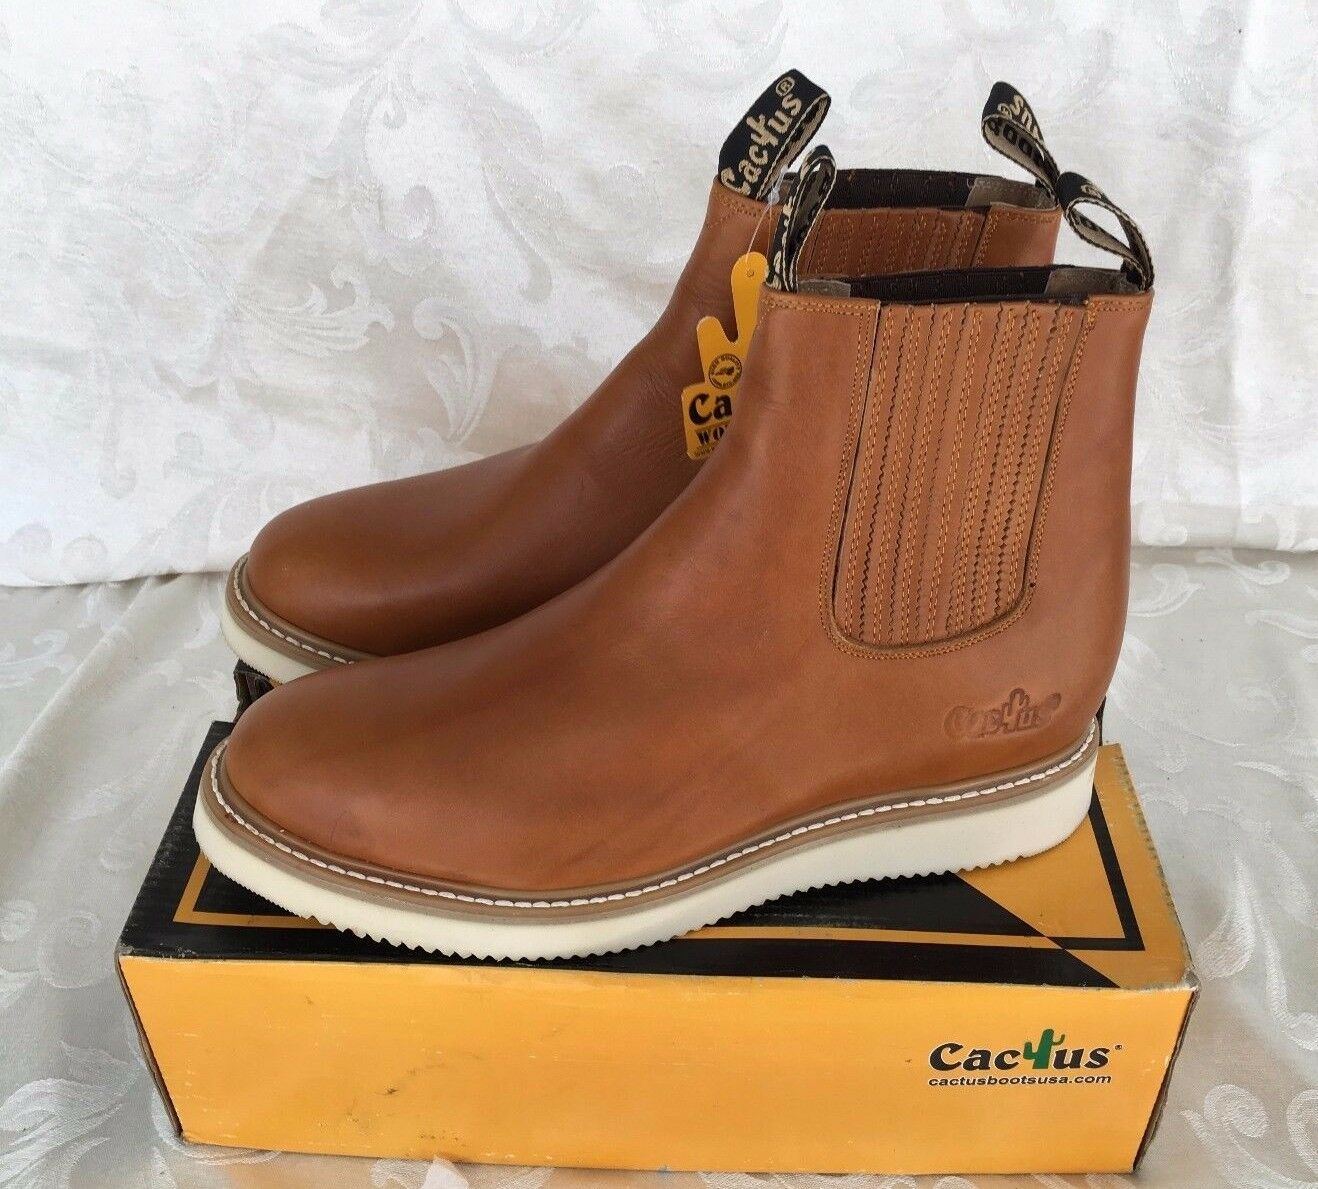 Cactus Work Stivali 7611 Honey Pull Pull Pull Up / Slip On Comfort Fit Real Pelle a3a7ff